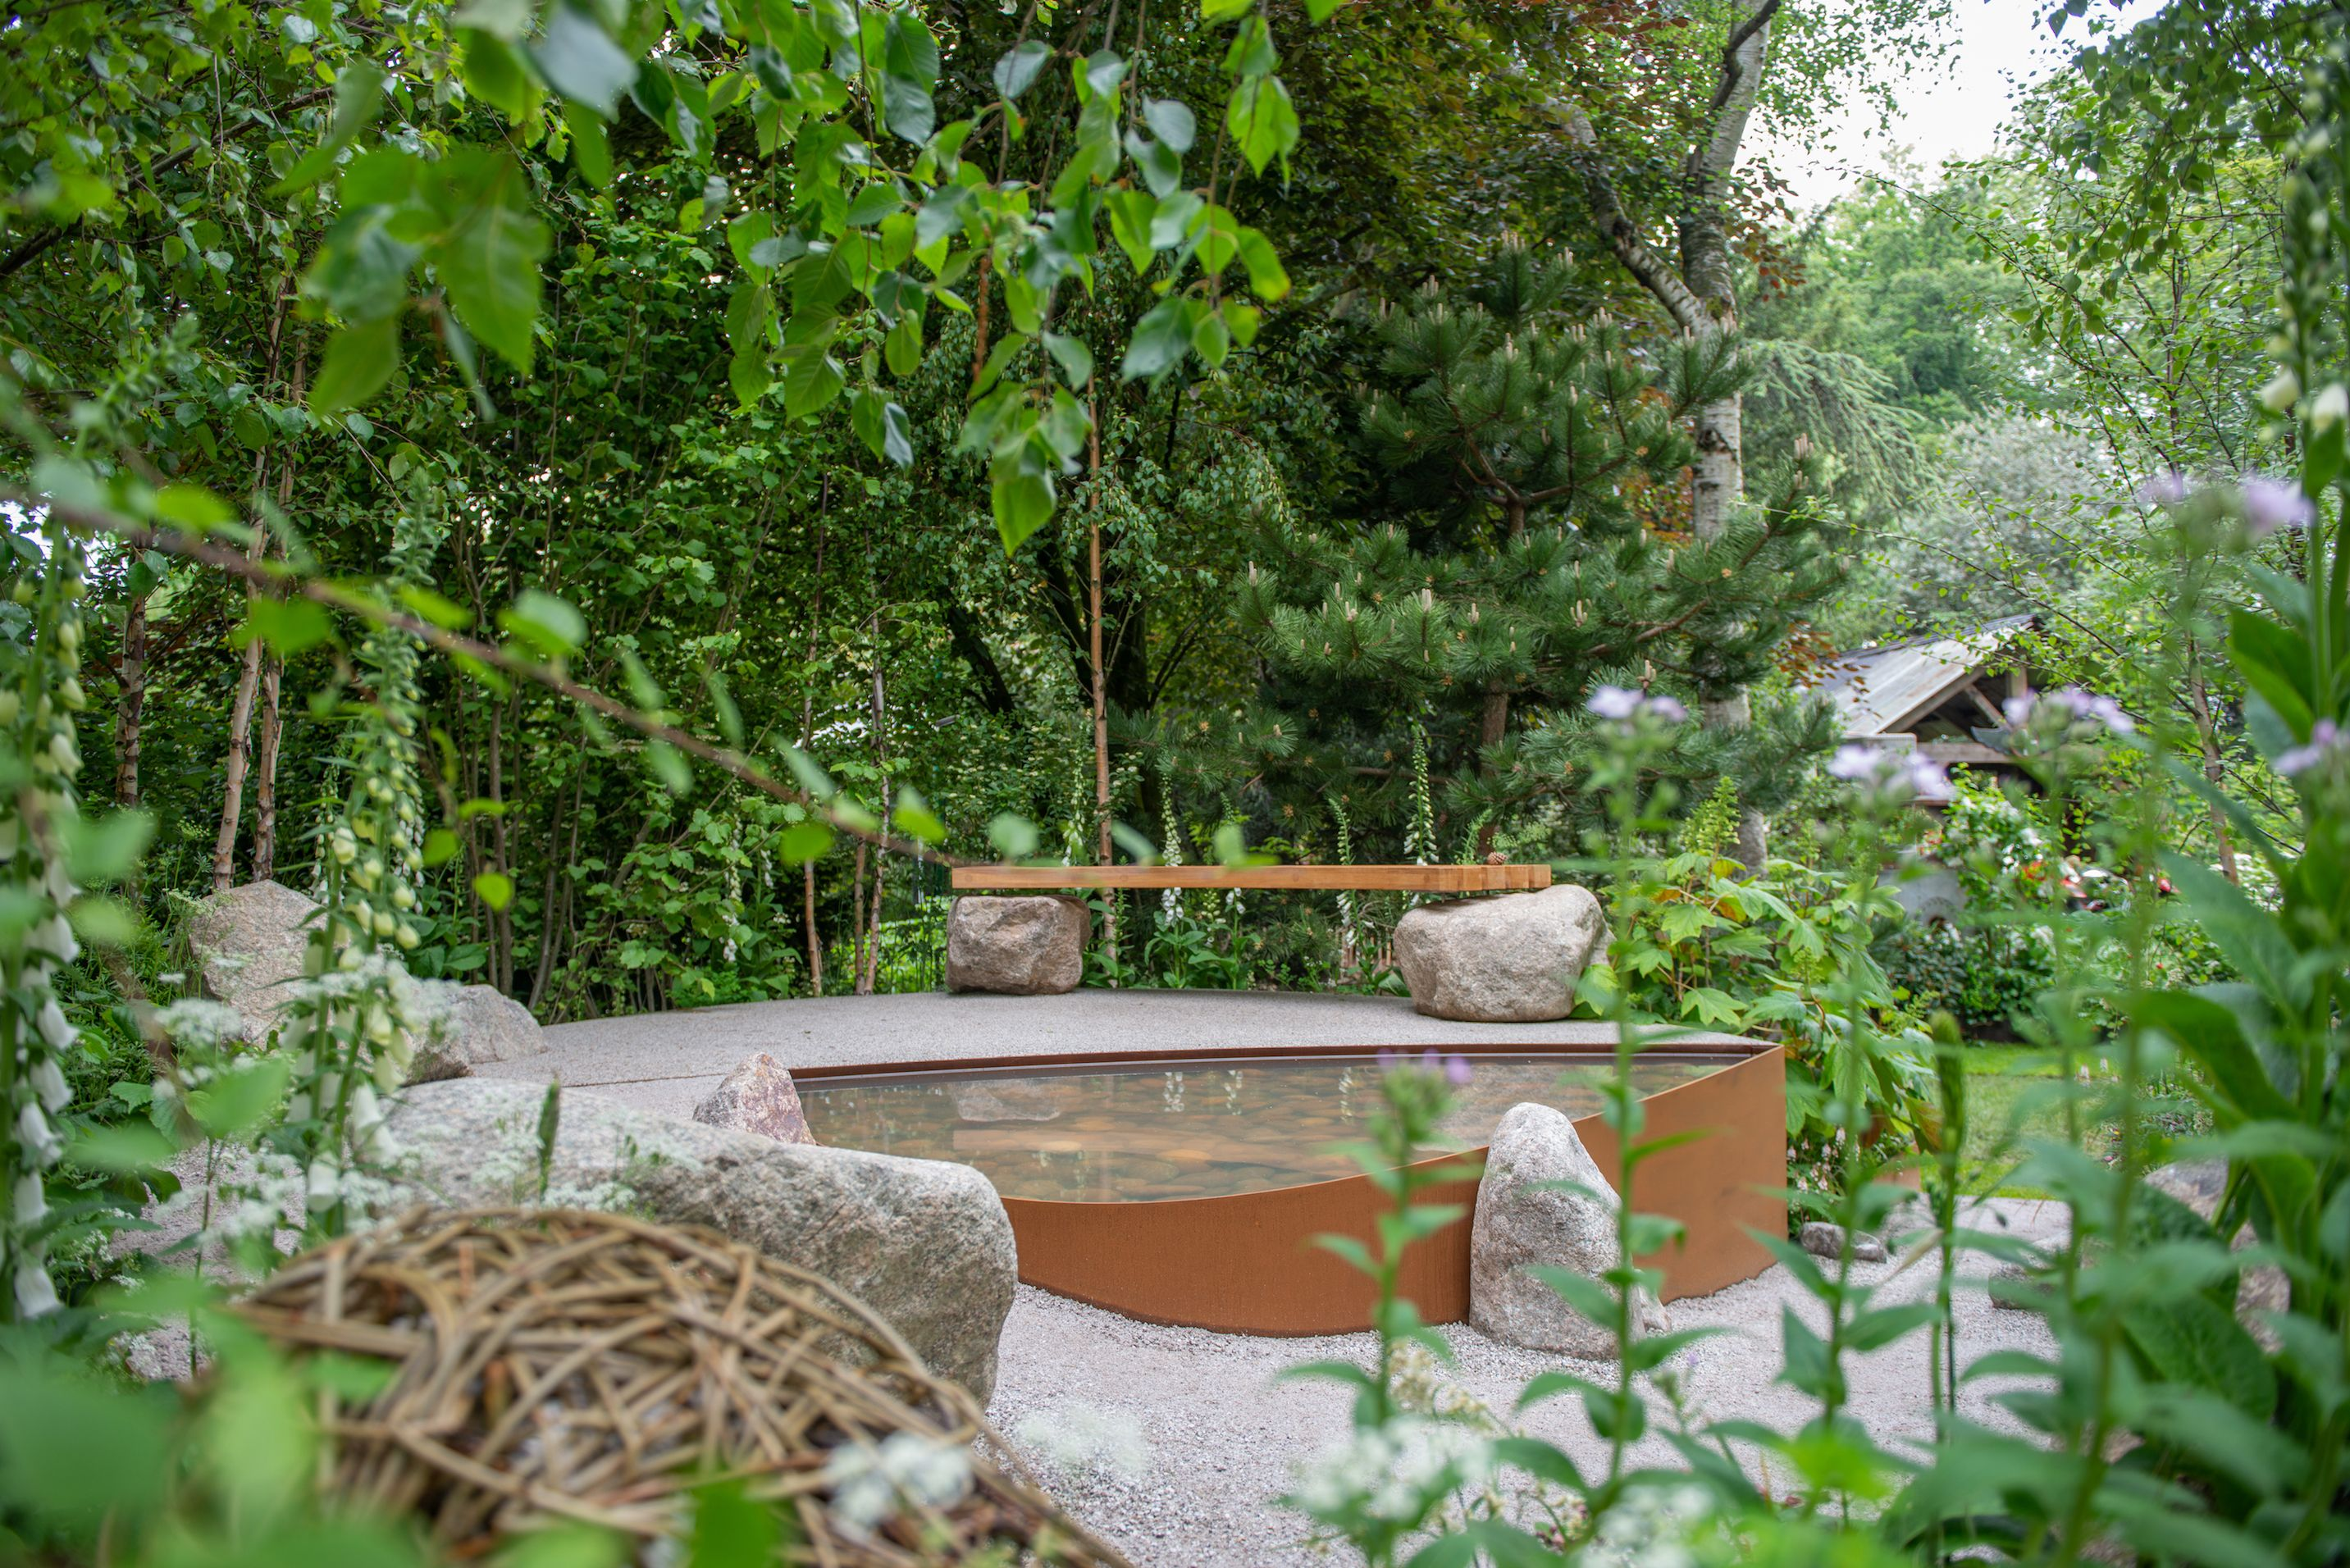 Chelsea Flower Show's award-winning Family Monsters Garden relocates to Stafford